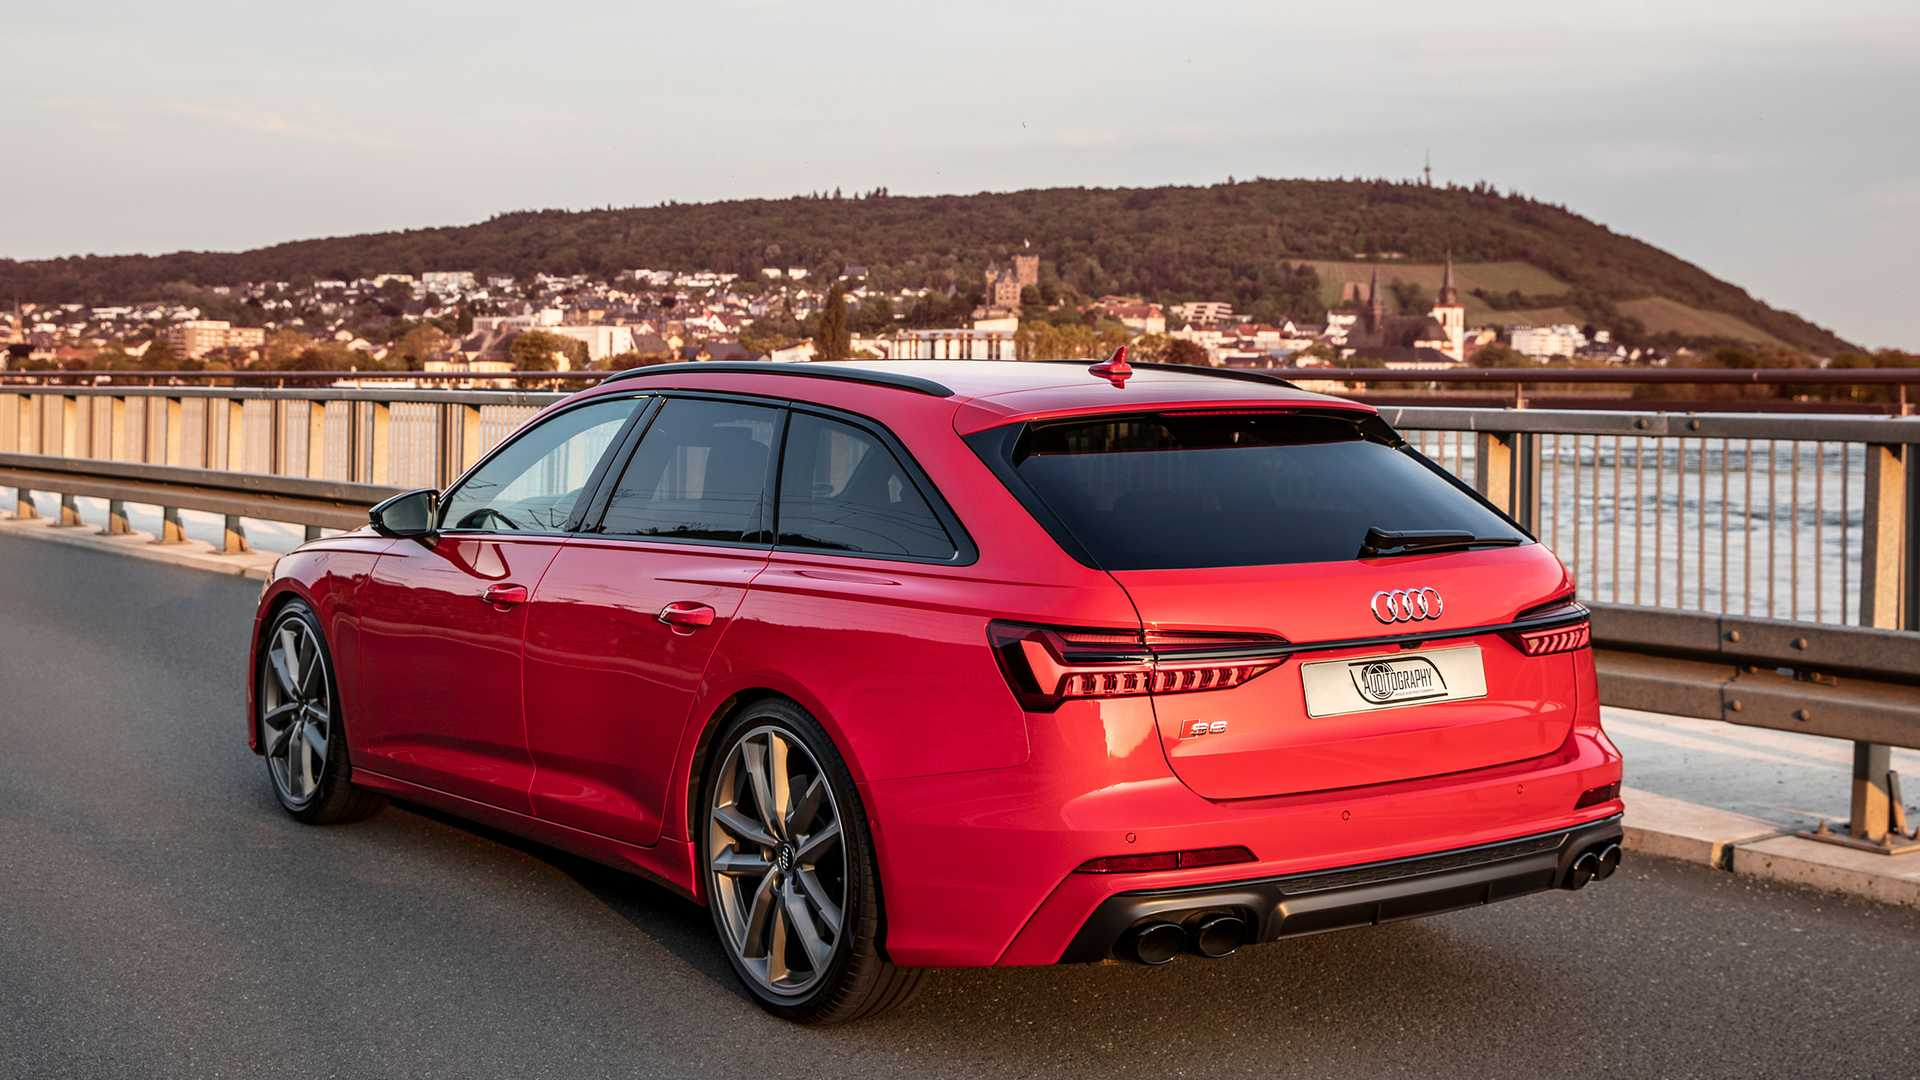 2020 audi s6 avant close-up video fuels our love for